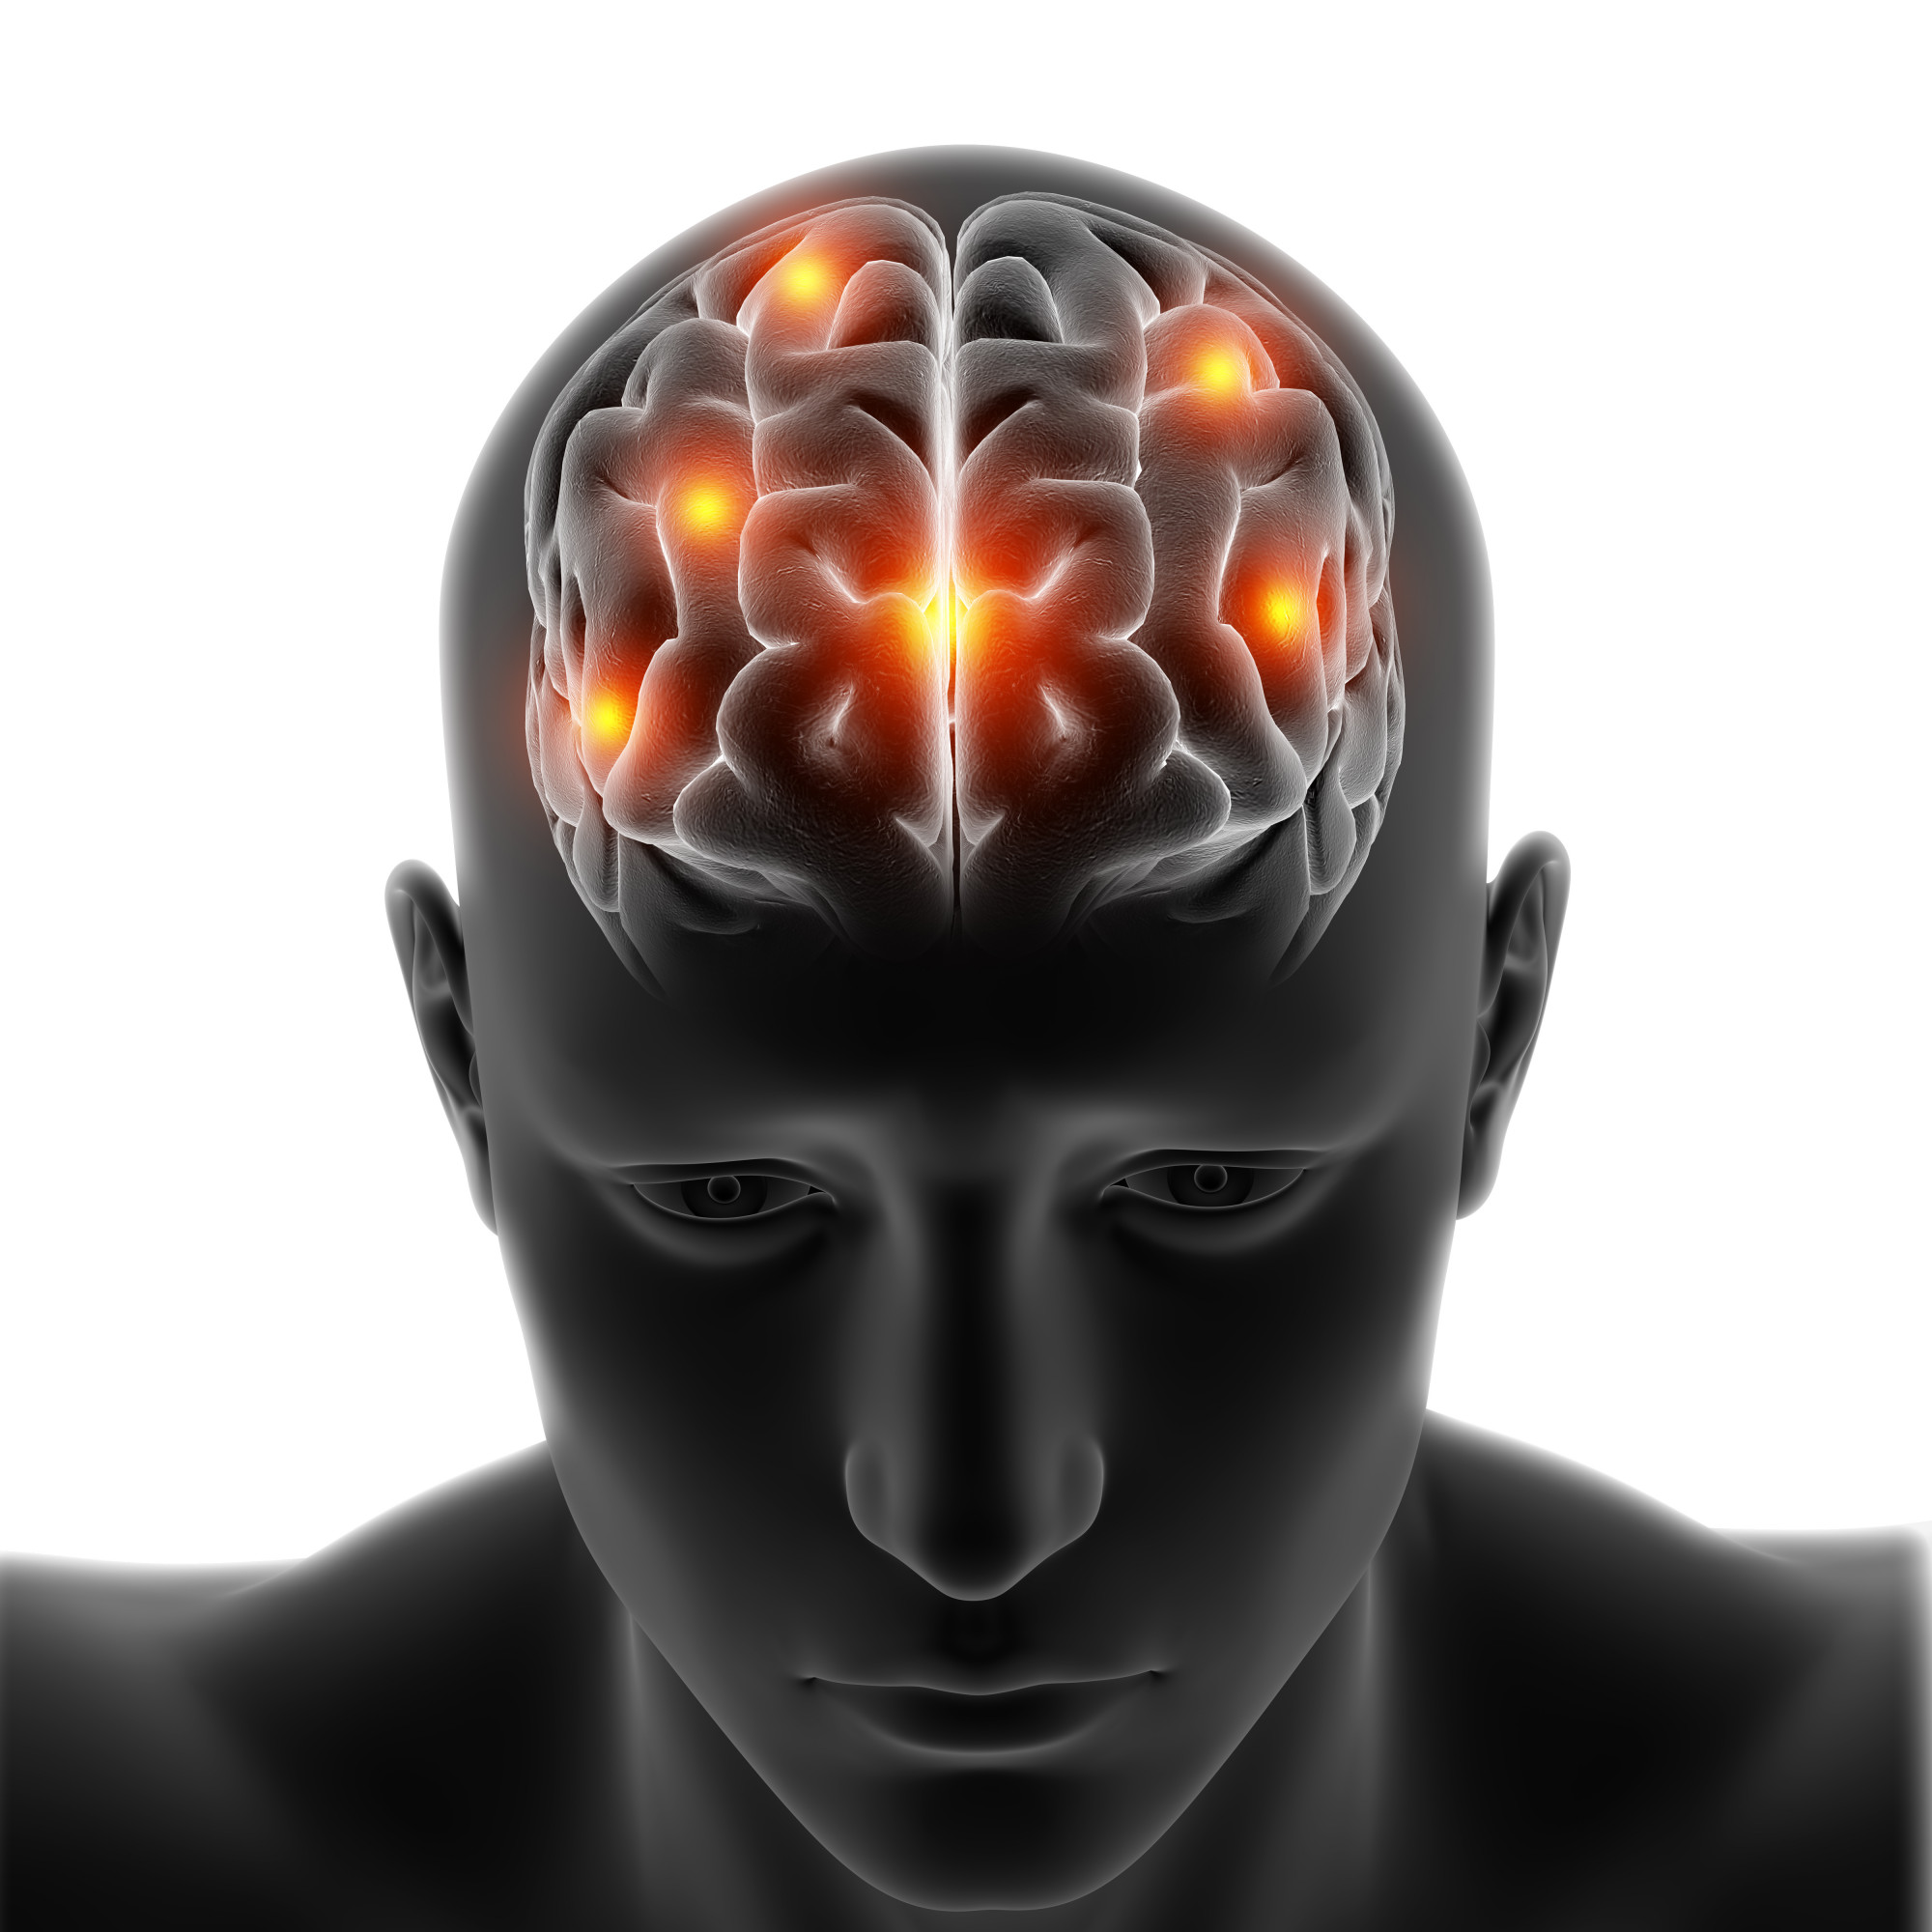 3D medical figure with brain highlighted on white background